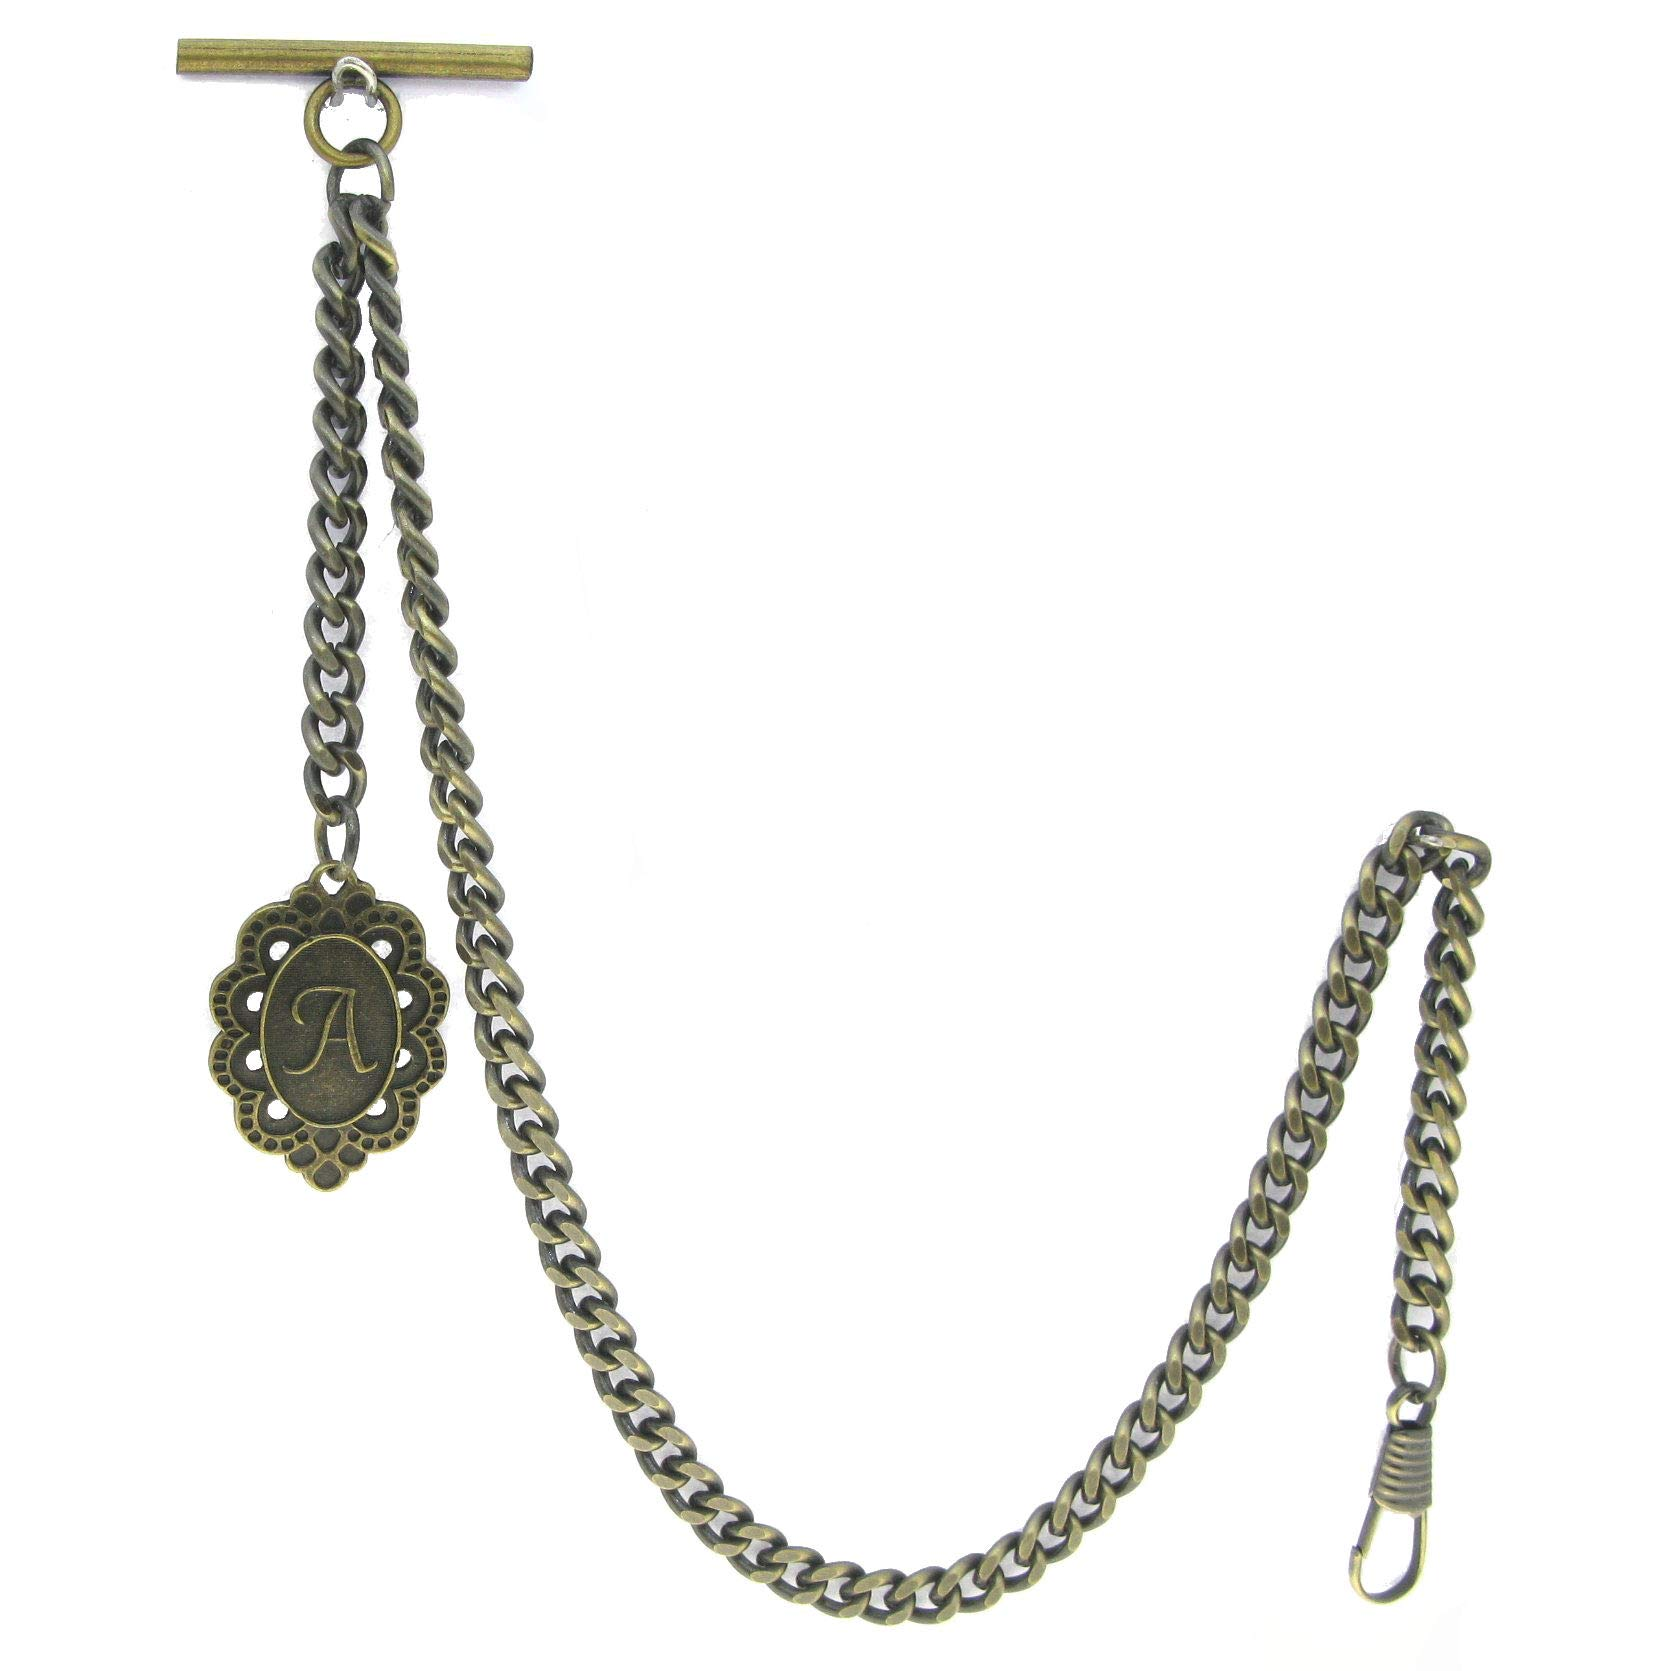 Albert Chain Pocket Watch Curb Link Chain Antique Brass Color + Alphabet A Initial Letter Fob T Bar AC89